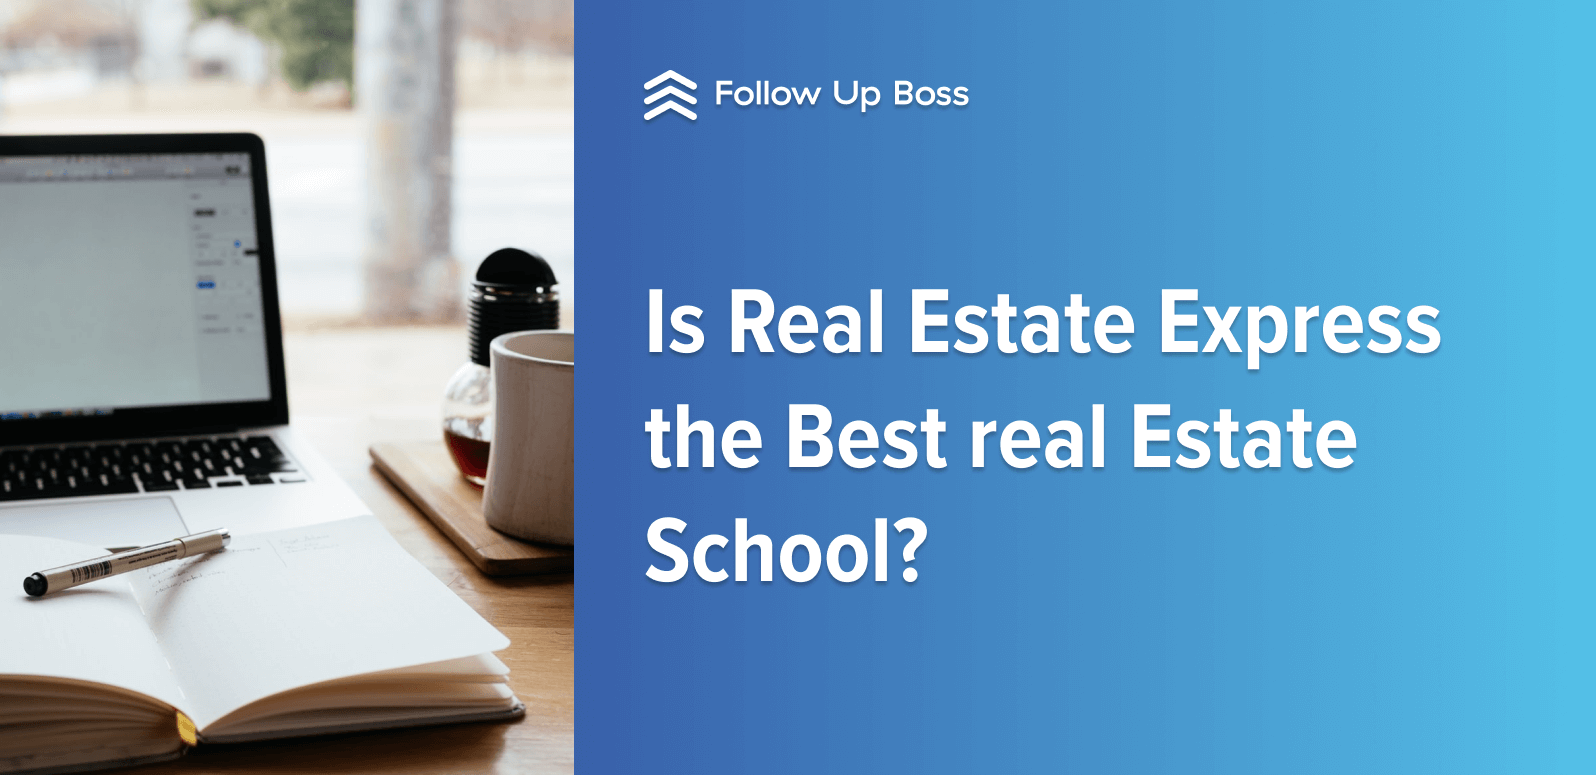 Review for 2019: Is Real Estate Express the Best of Its Kind?